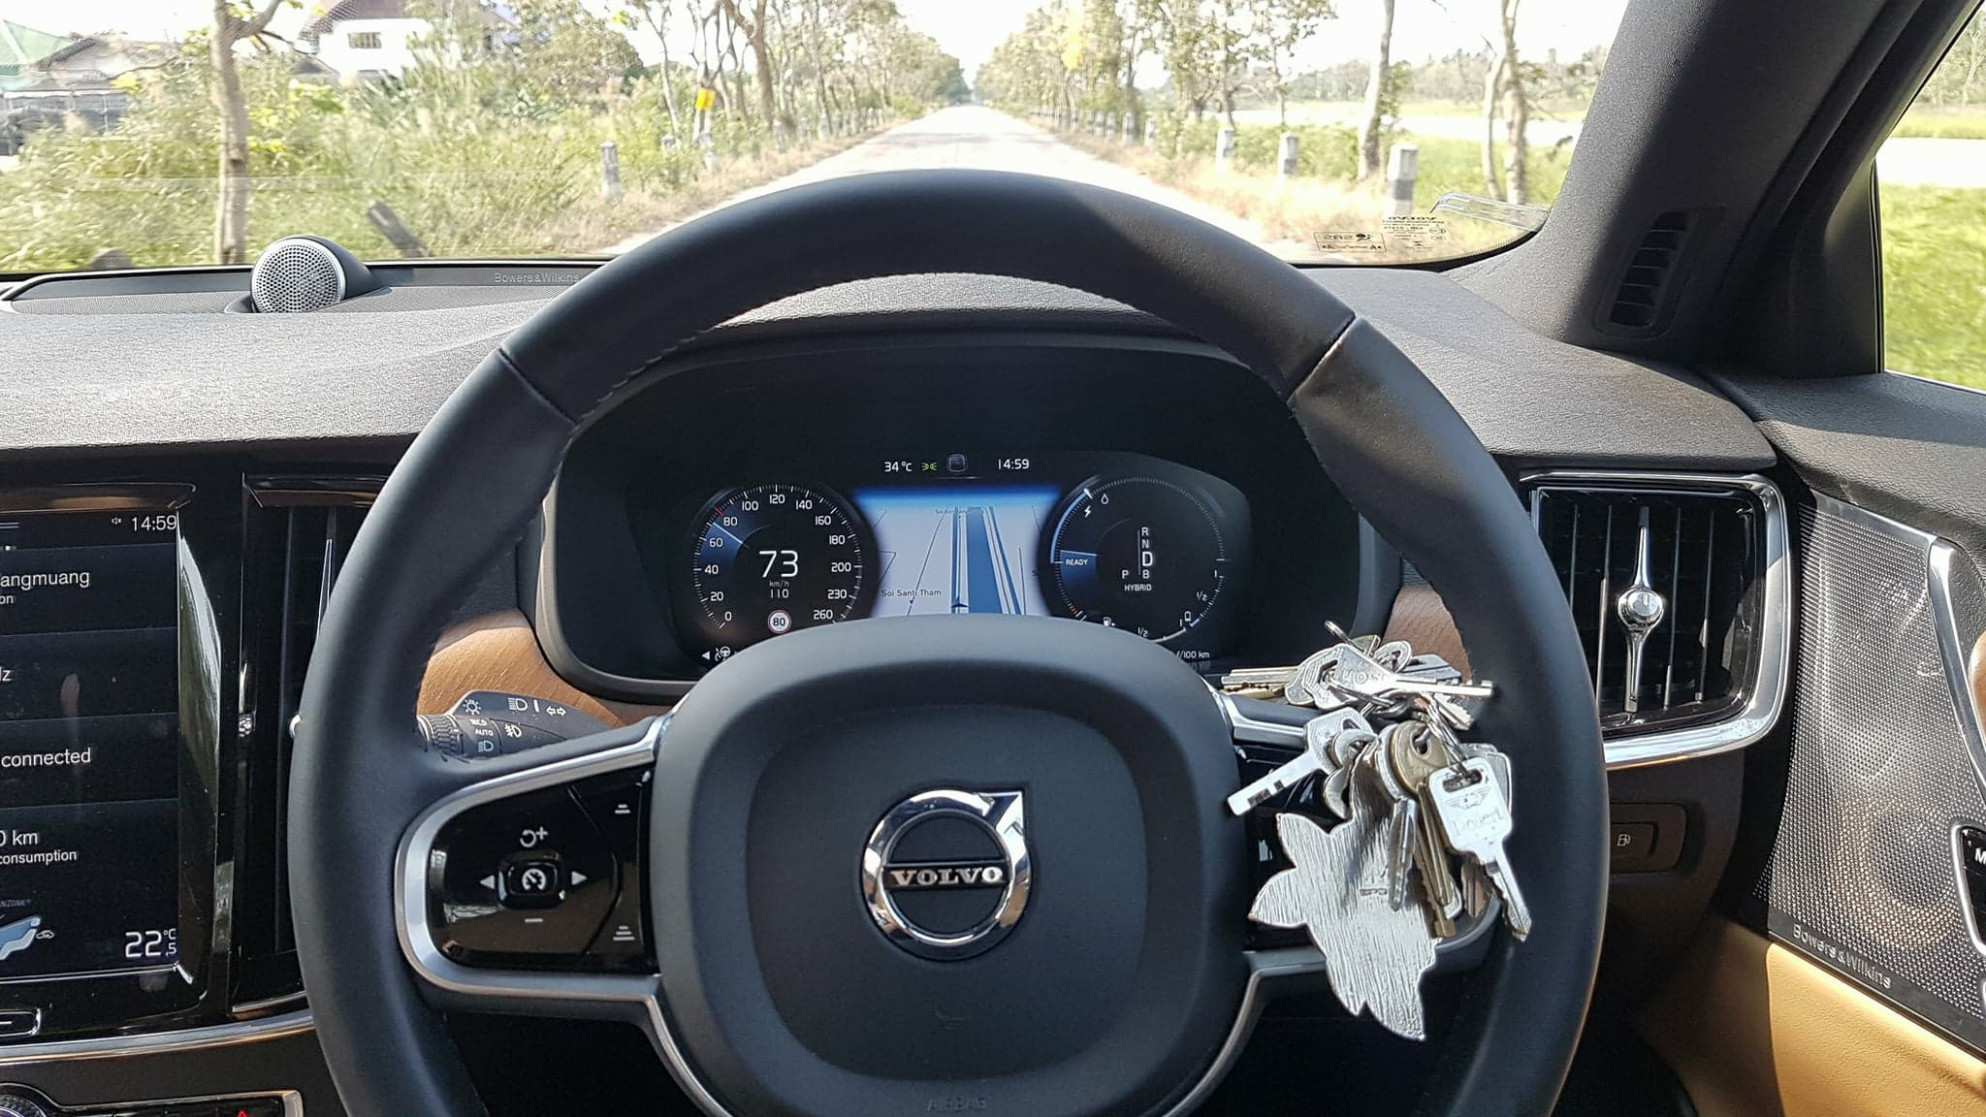 76 All New Volvo Pilot Assist 2020 Research New for Volvo Pilot Assist 2020